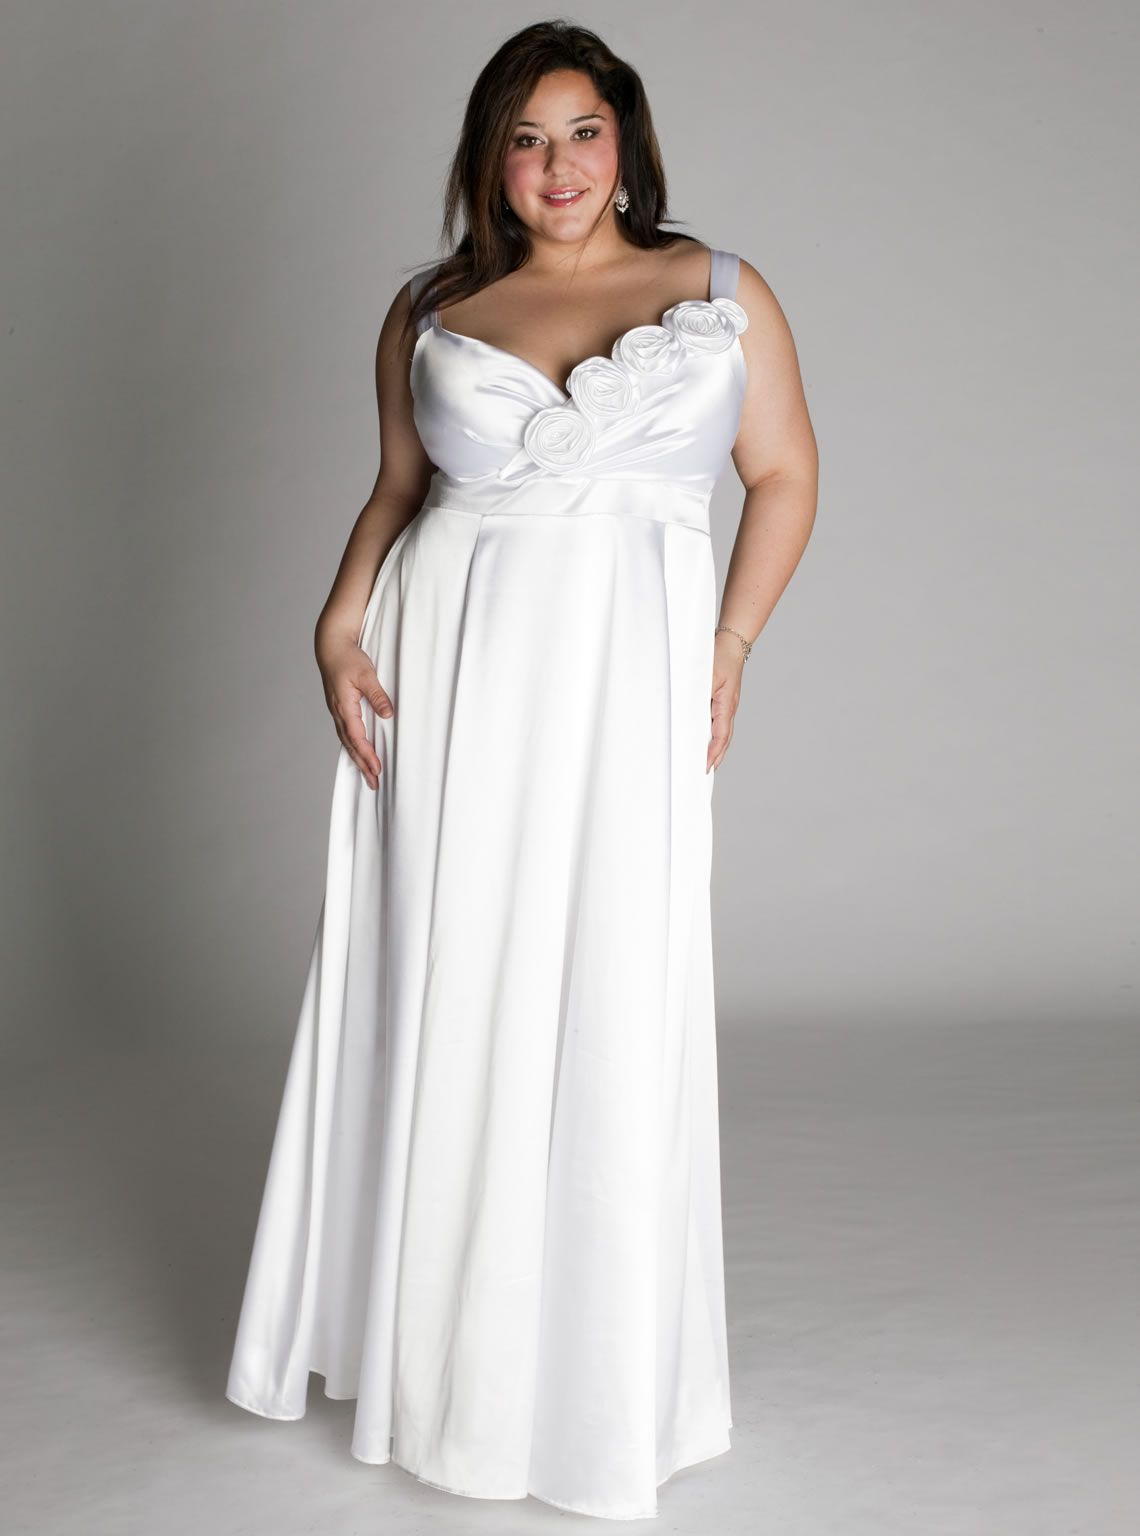 plus size weding dresses cheap 26 #plus #plussize #curvy